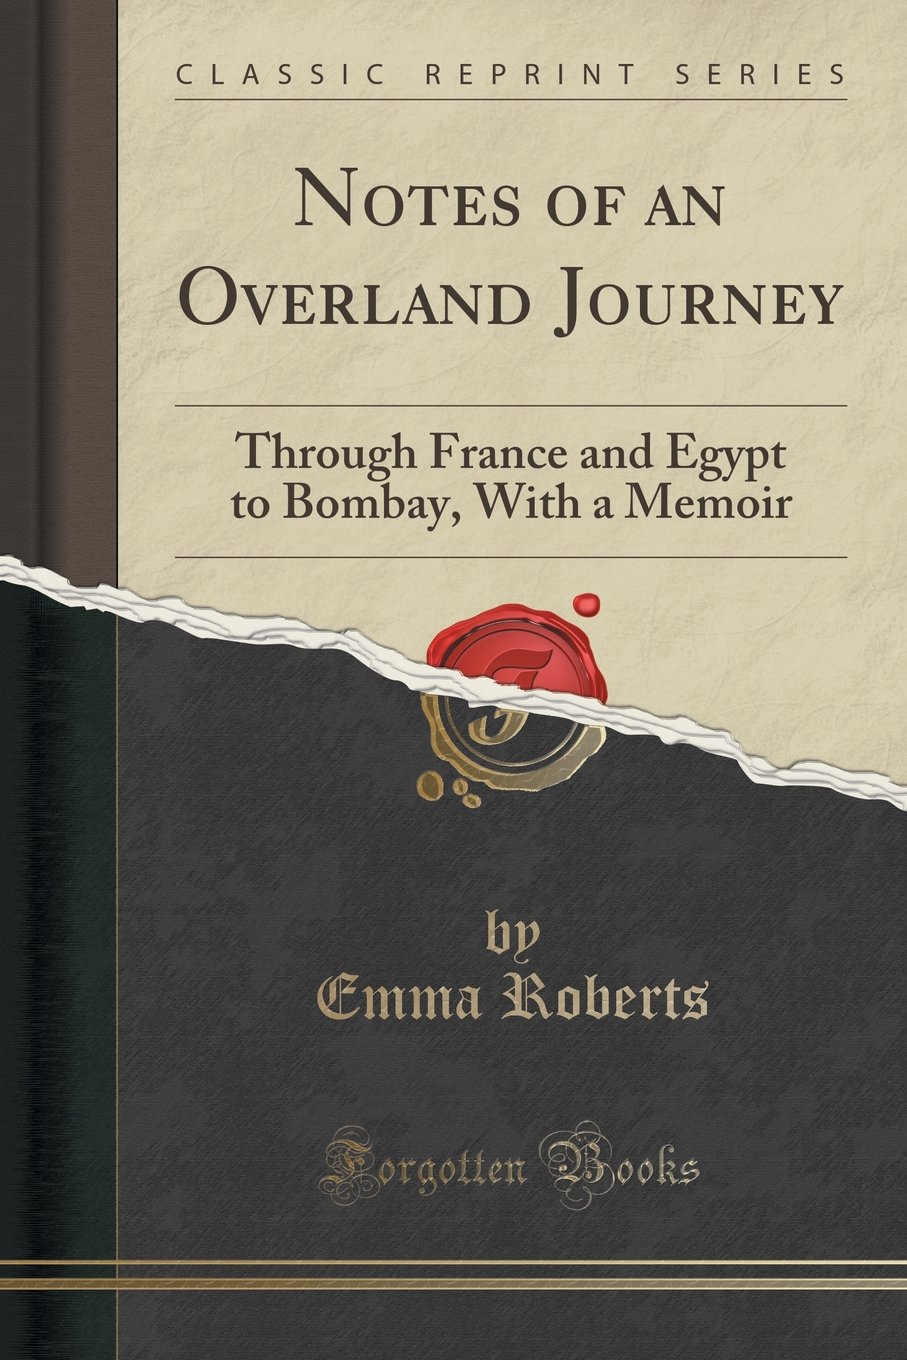 Notes of an Overland Journey: Through France and Egypt to Bombay, With a Memoir (Classic Reprint)